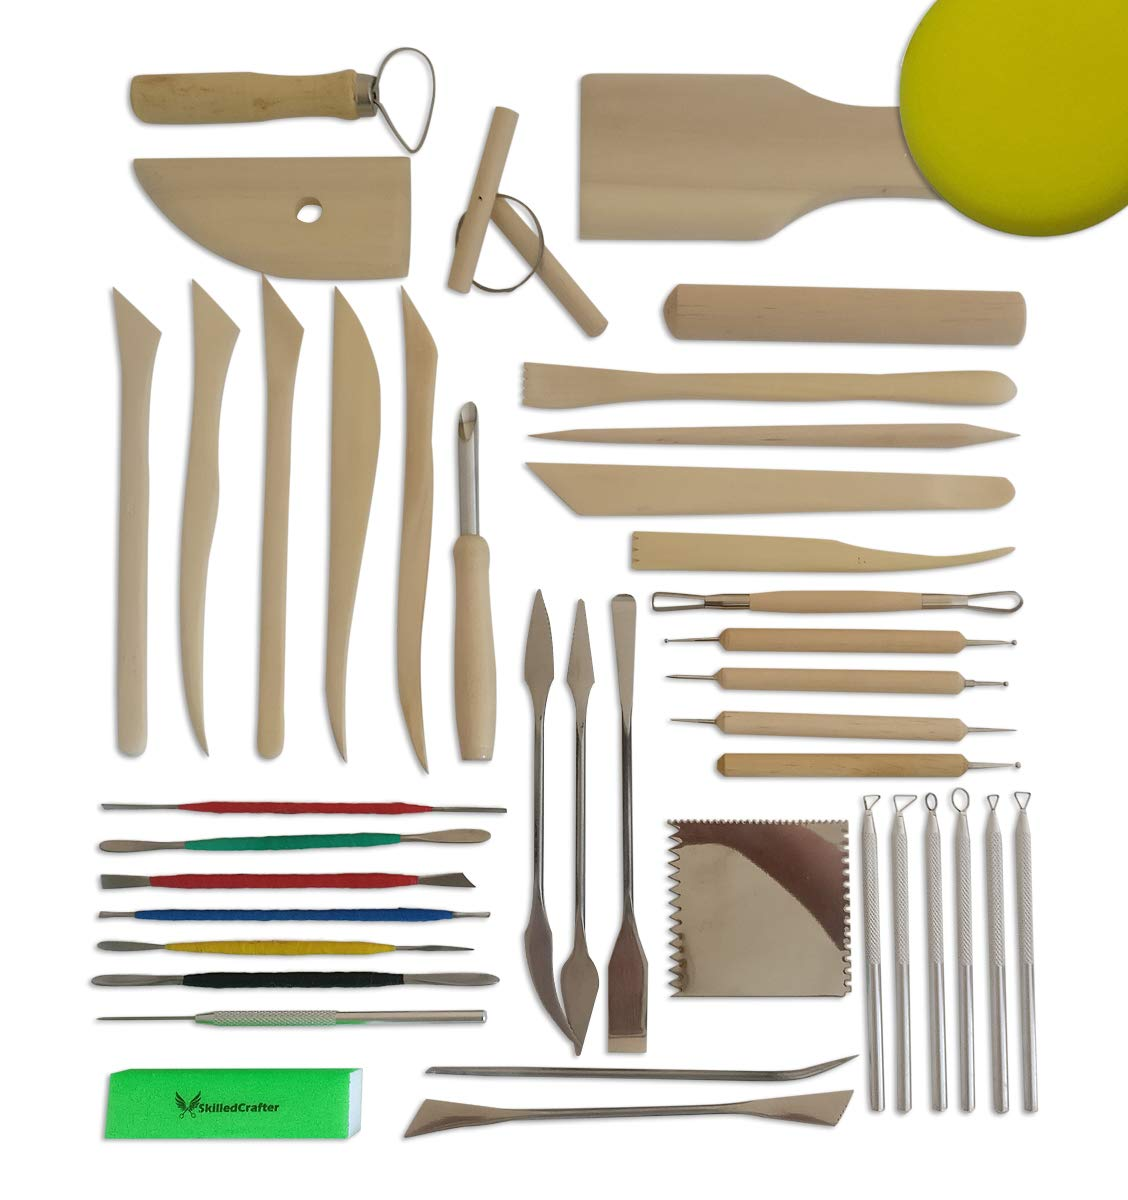 Skilled Crafter Pottery Tools Deluxe 40 Piece Set + Free Sponge & Needle Tool.The Smoothest Tools Made from Premium Ginkgo Wood, Stainless Steel & Aluminum for Creative Modeling Perfection!